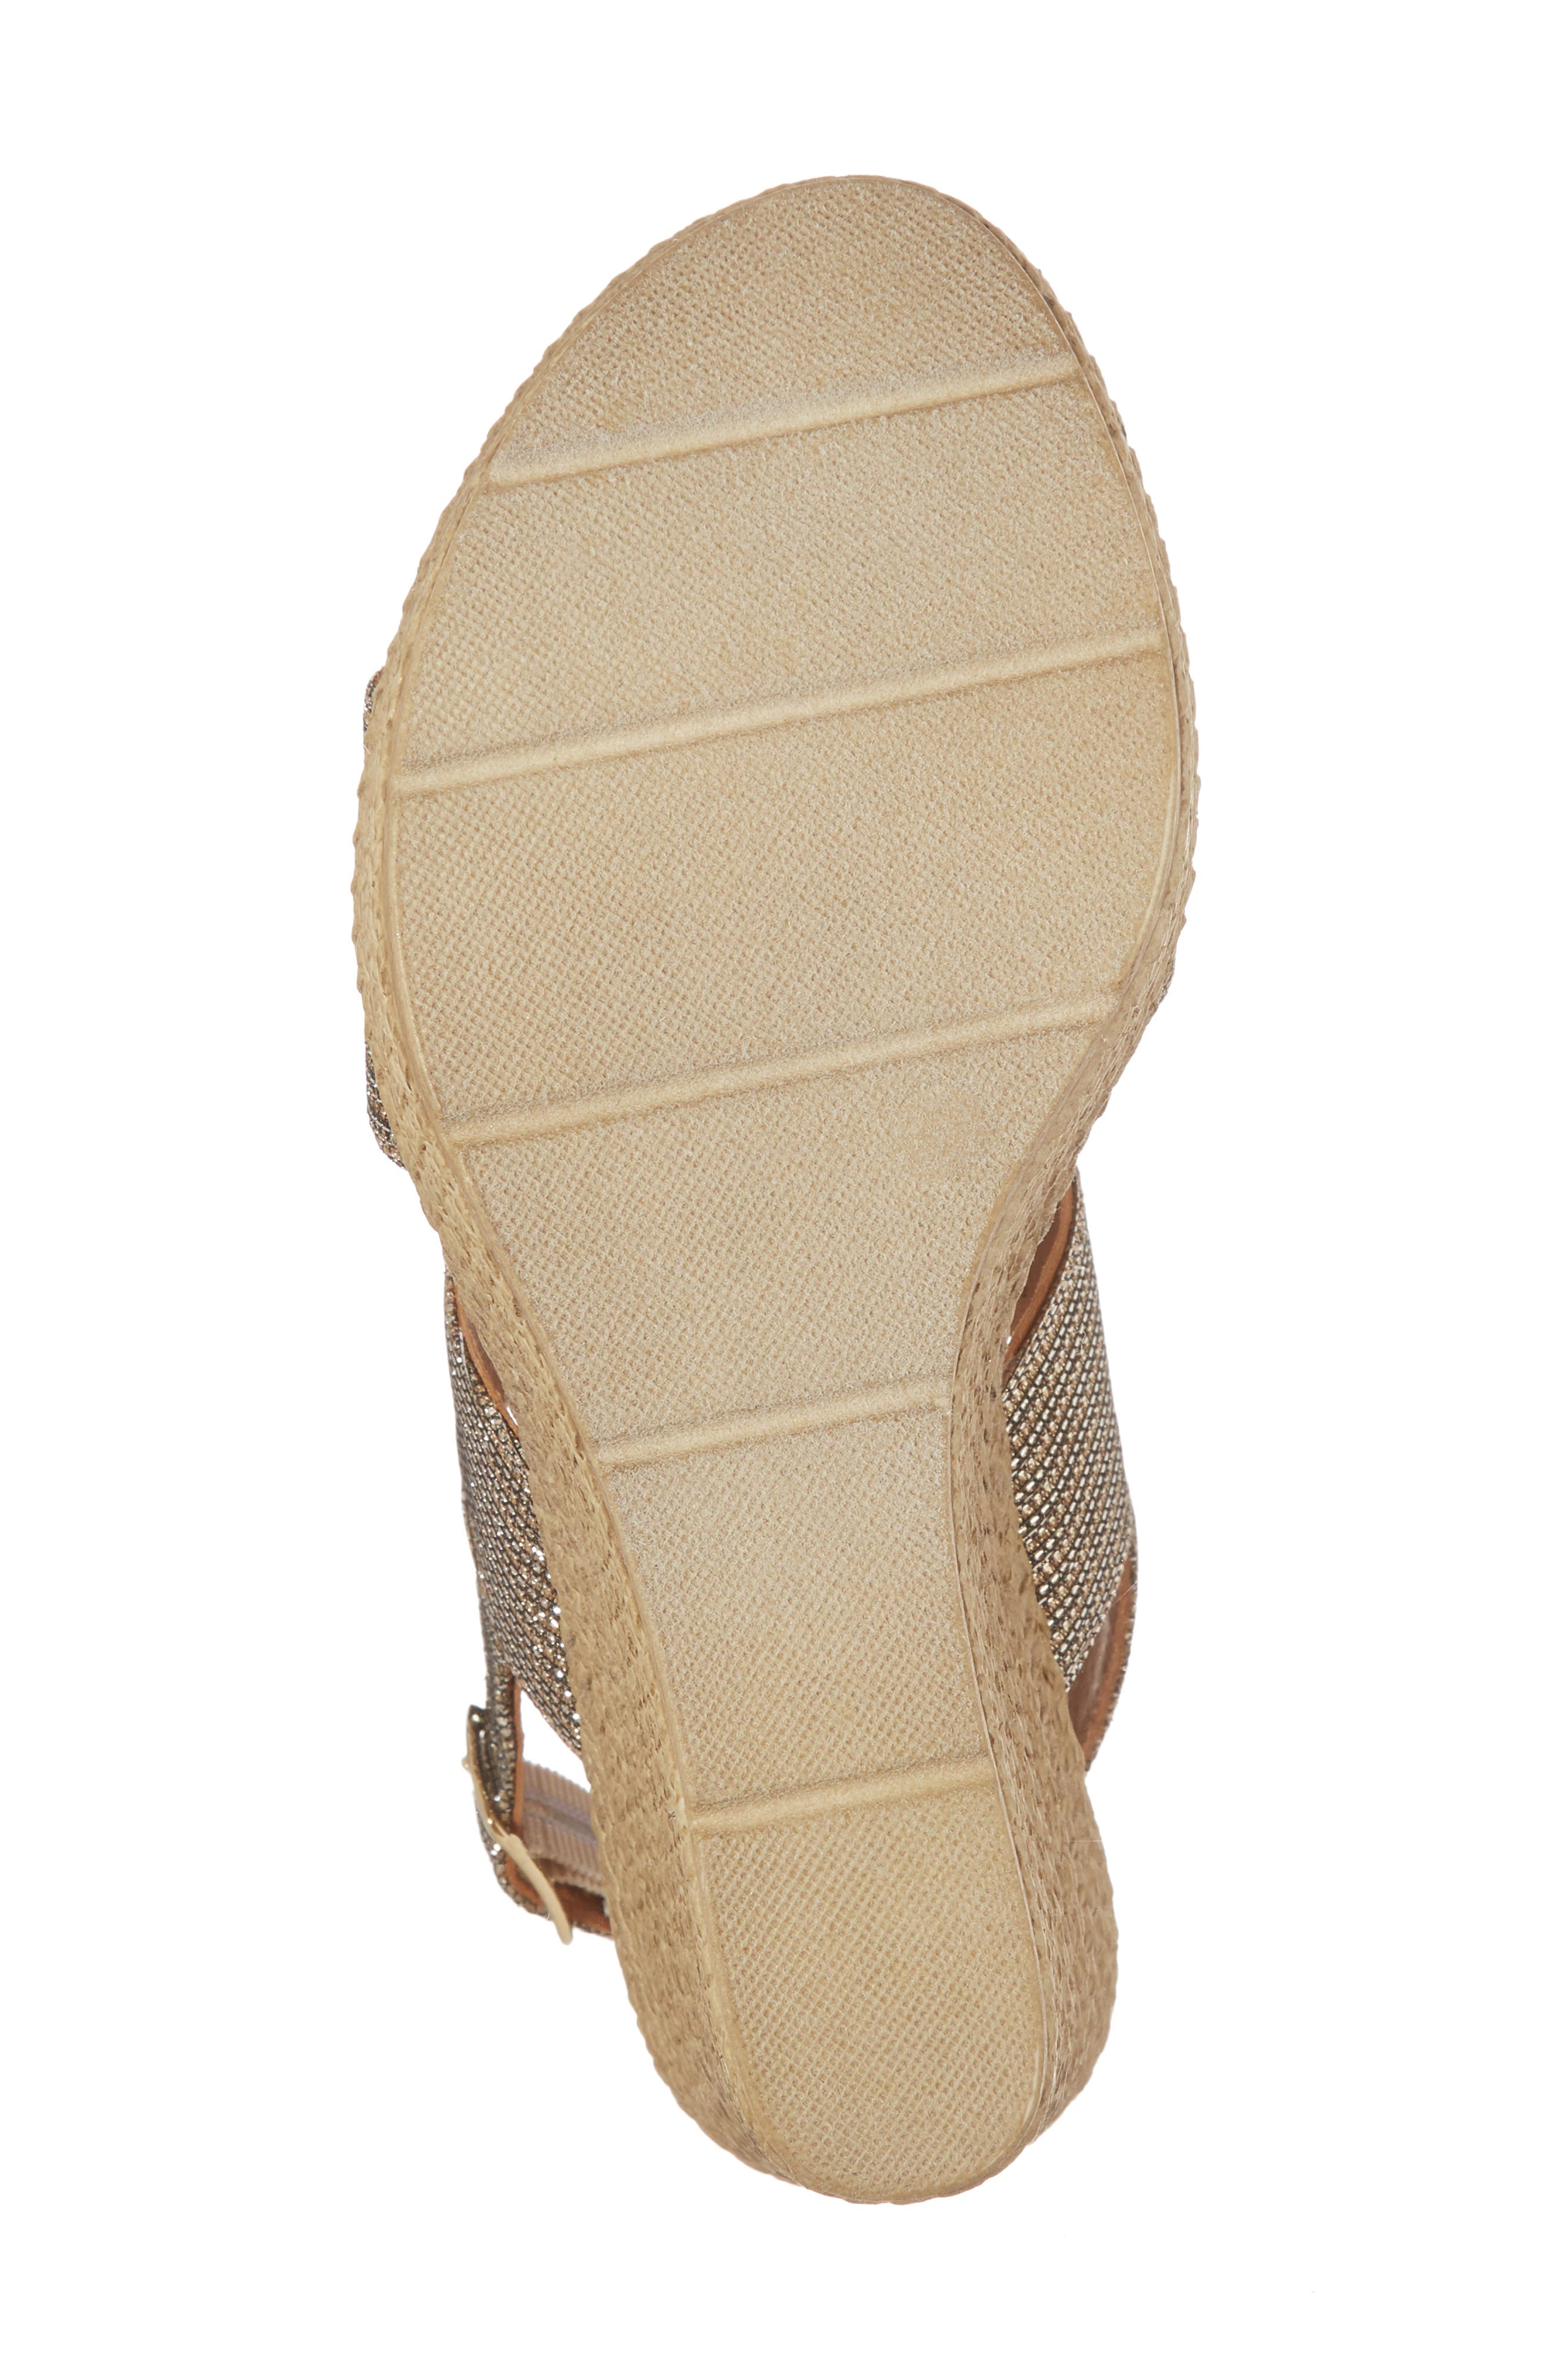 Downtime Wedge Sandal,                             Alternate thumbnail 6, color,                             Bronze Metallic Fabric